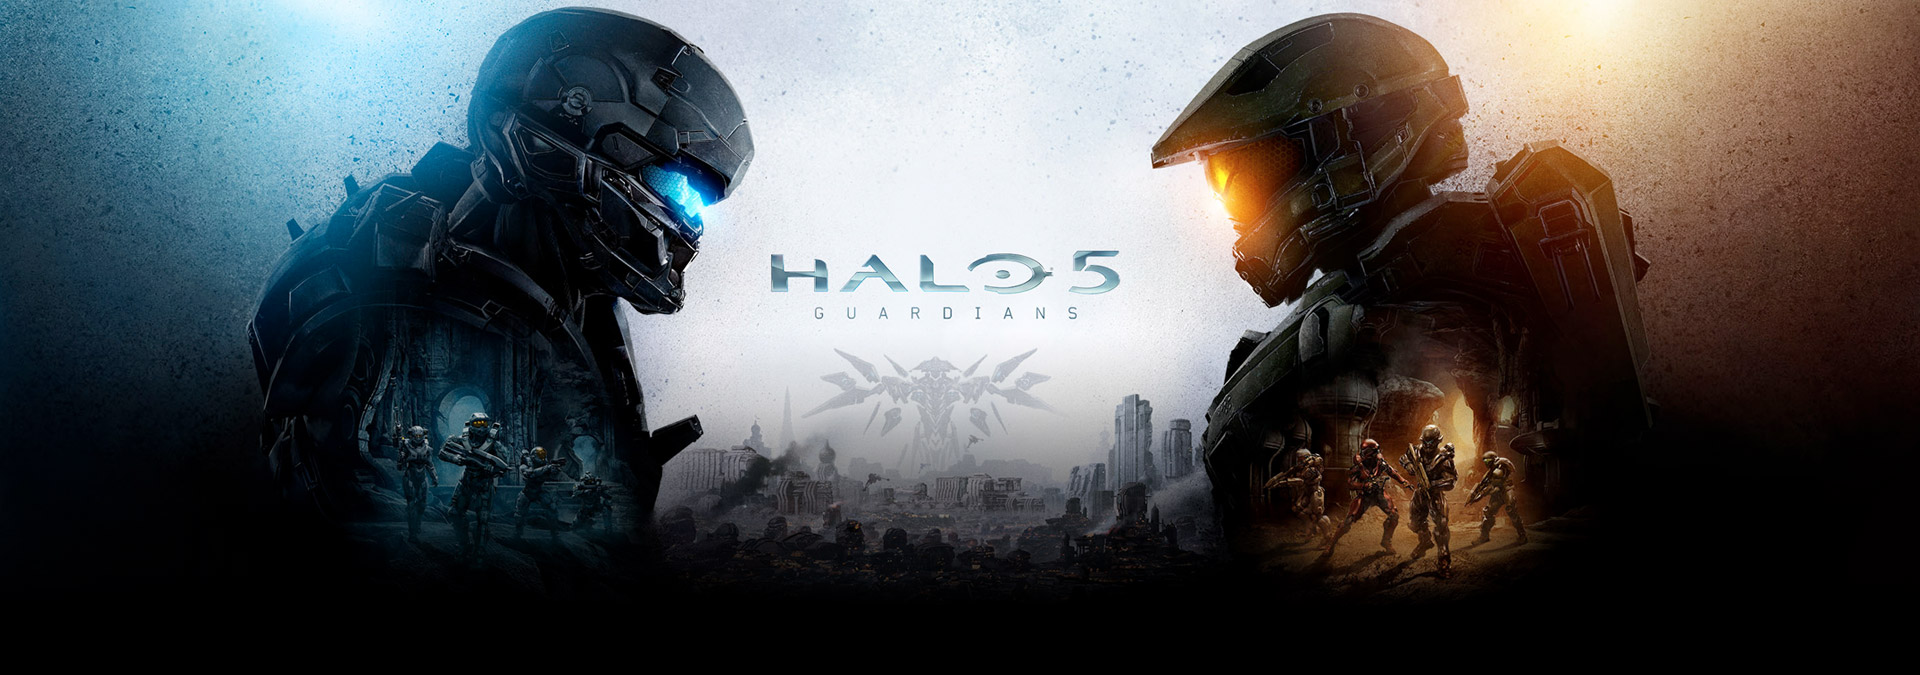 halo 4 matchmaking taking forever Upcoming halo 4 matchmaking updates for 2014, including big team swat, big team heavies, and dlc-required playlists.